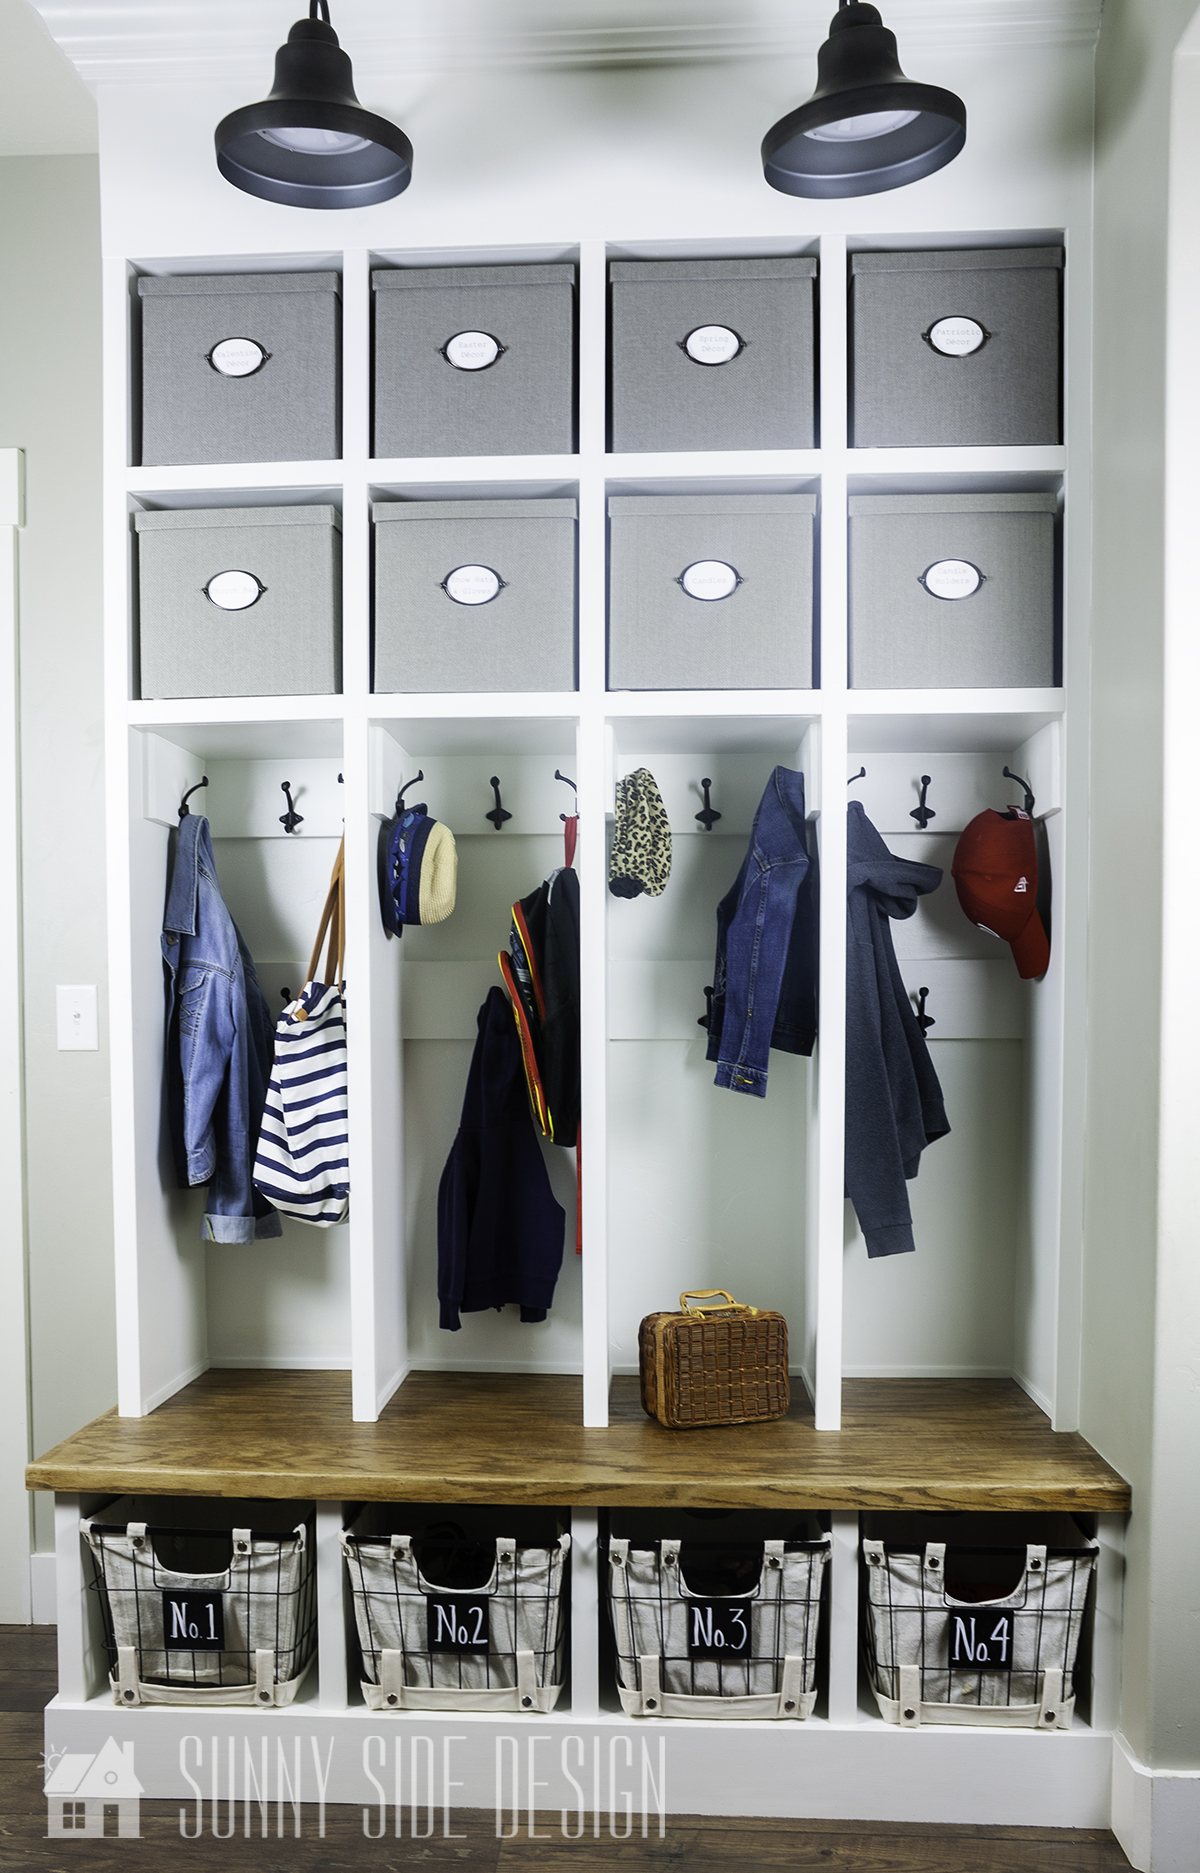 How to Build Mudroom Built-ins